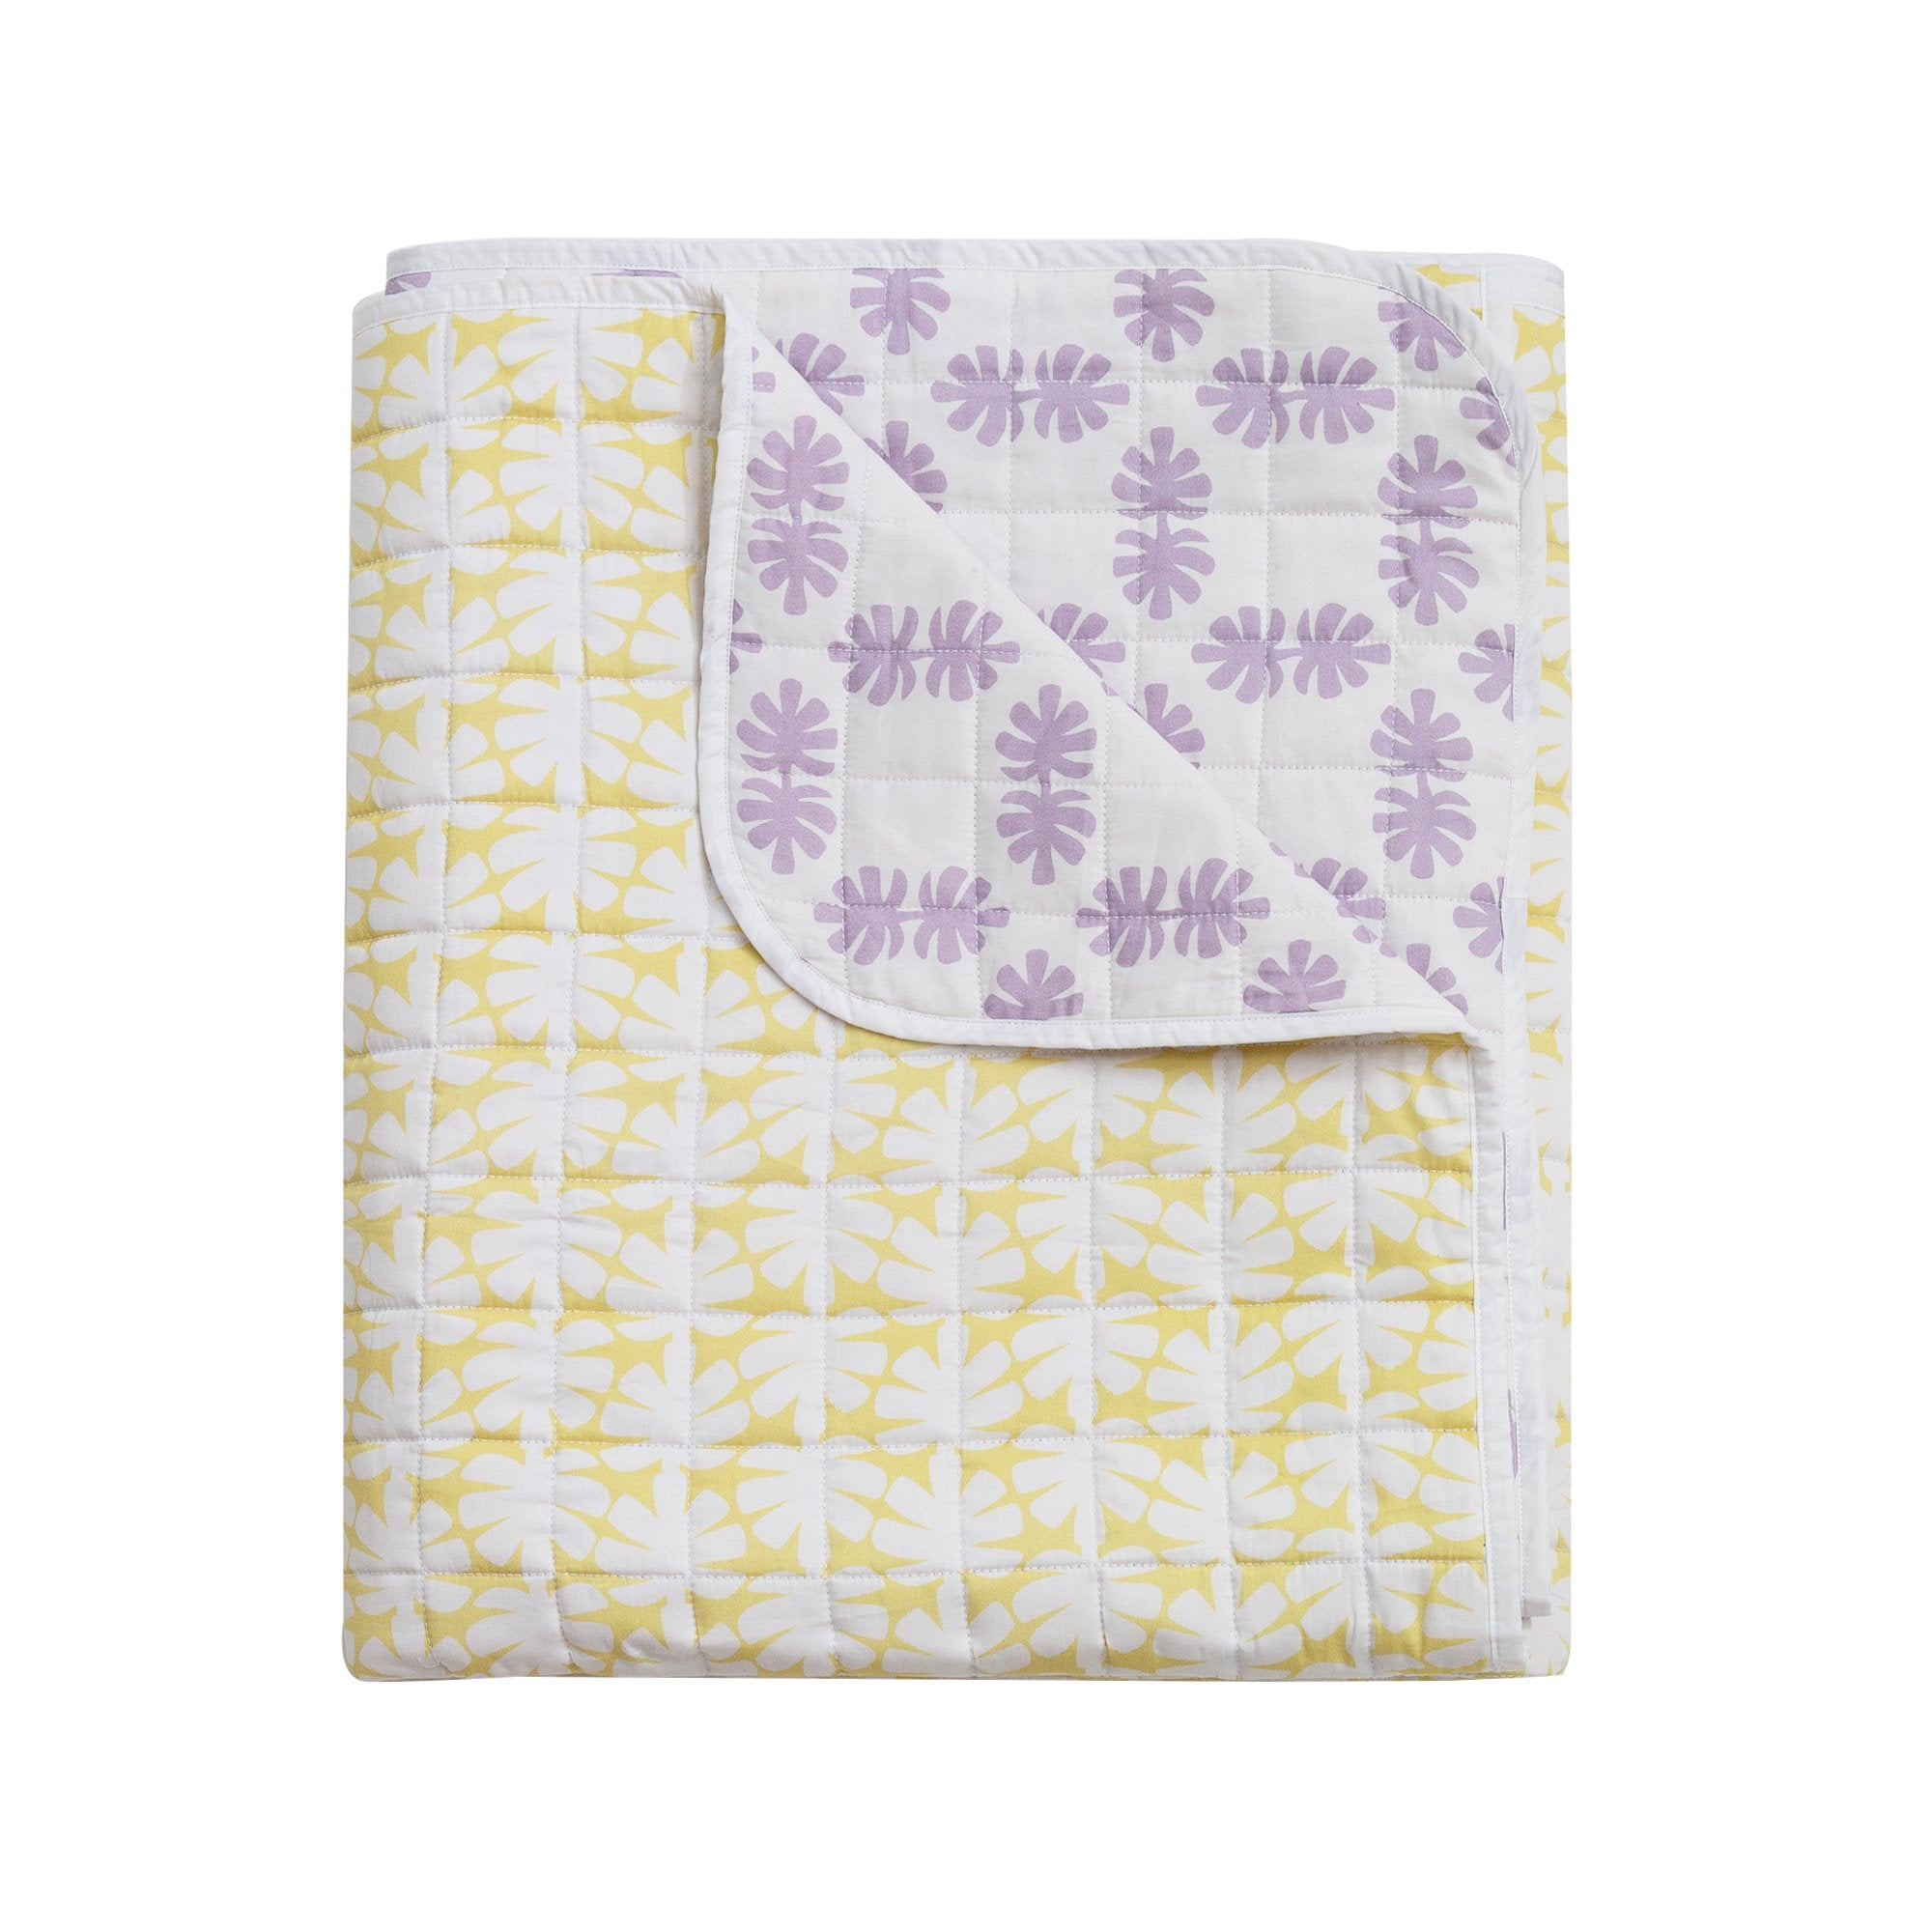 Kikau's Mango and Lilac Coco Palm Quilted Bedspread on white background